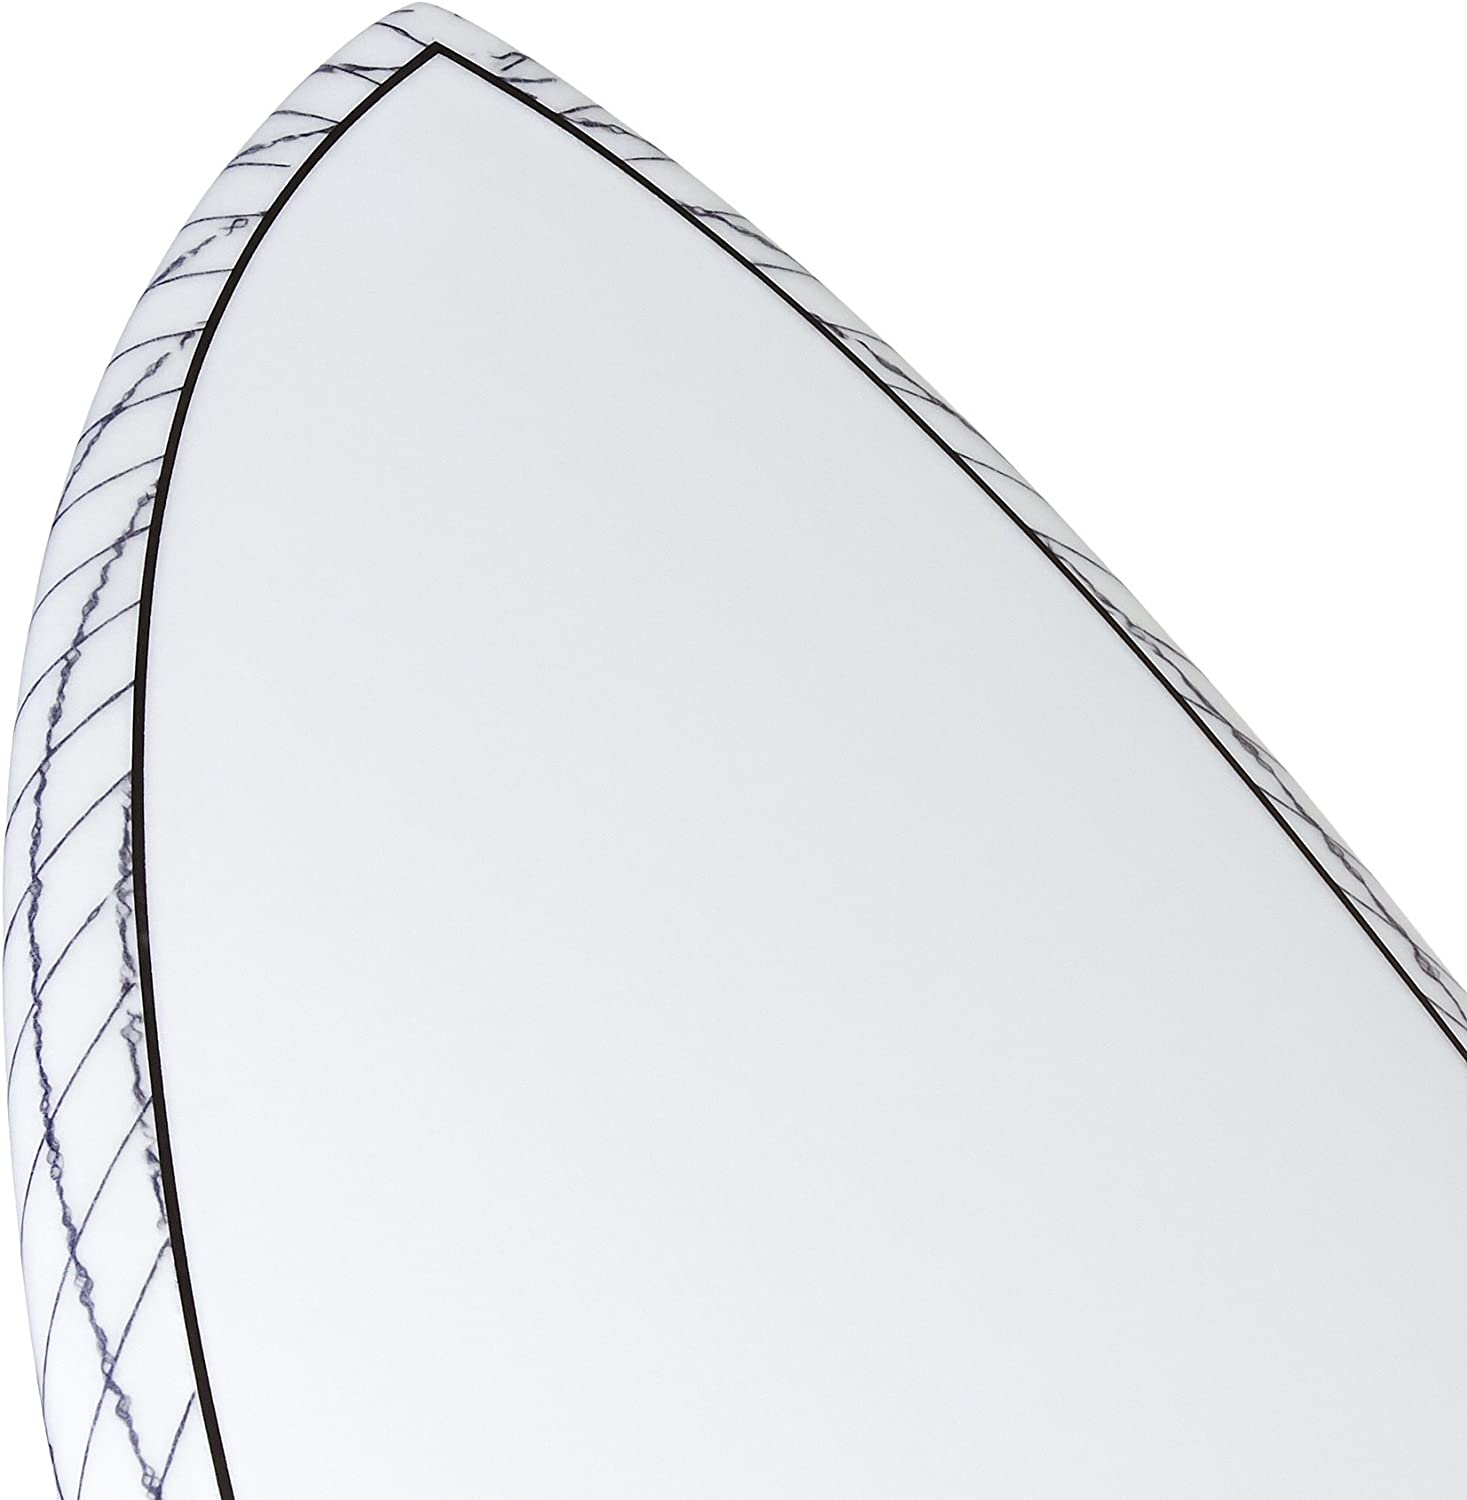 7S Super Fish 3 Carbon Vector Surfboard 7S Surfboards White